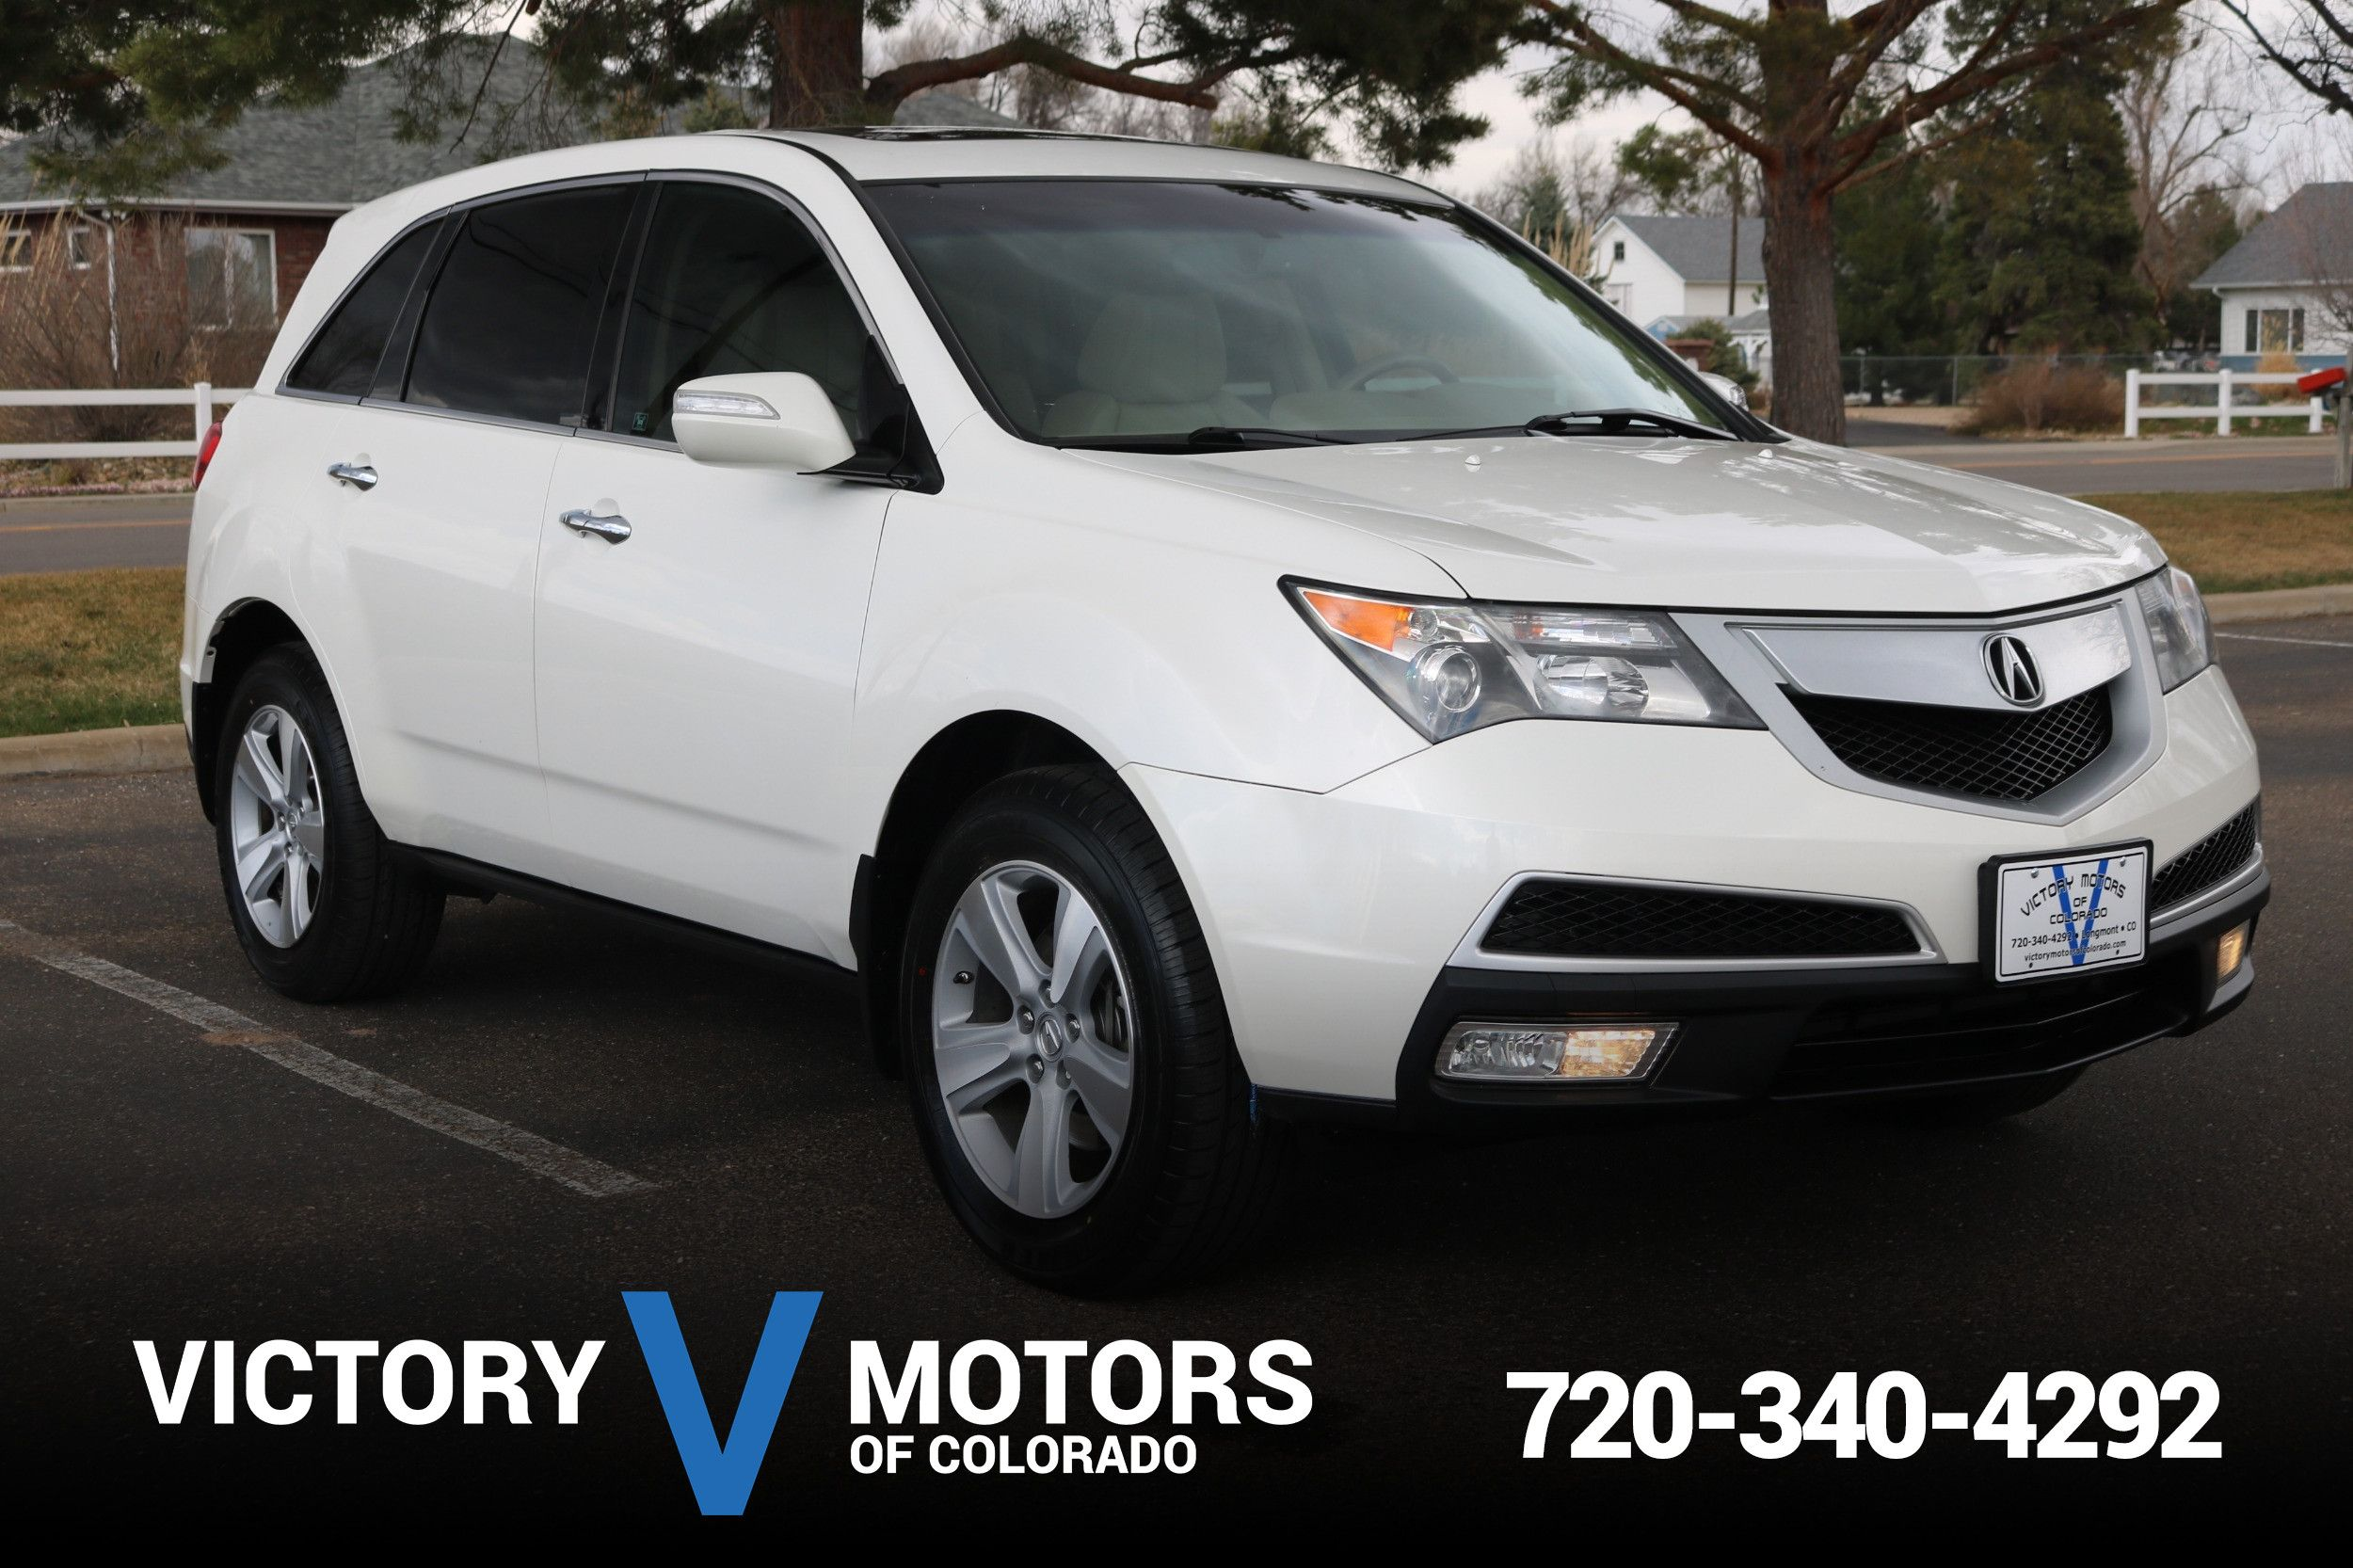 models ohio new sale cars of for dealers mdx acura connecticut beautiful